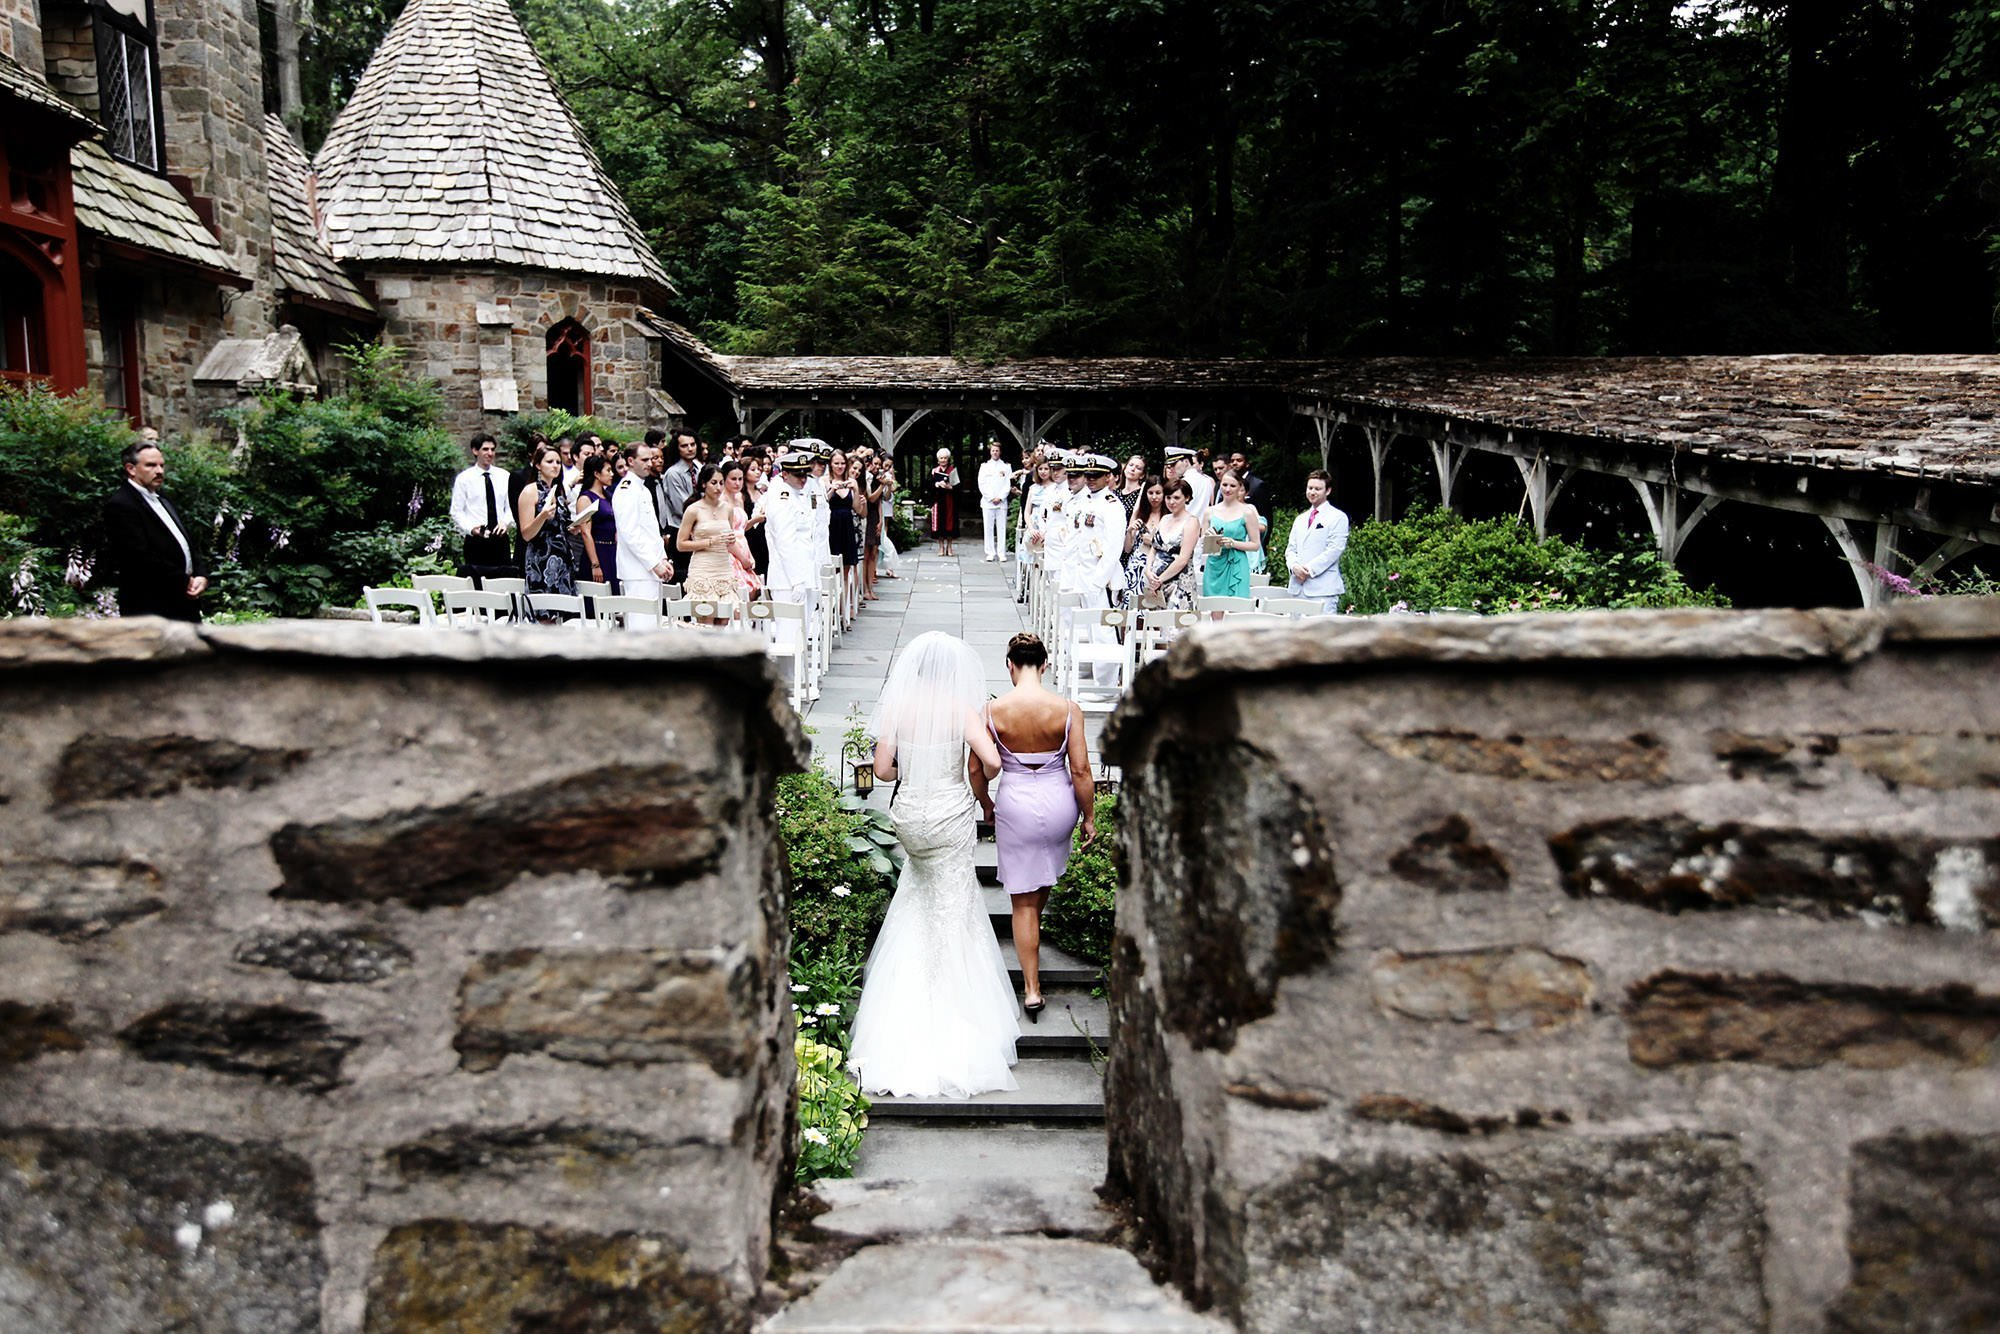 Cloisters Castle Wedding  I  The bride processes down the aisle with her mother during the ceremony in Lutherville, MD.